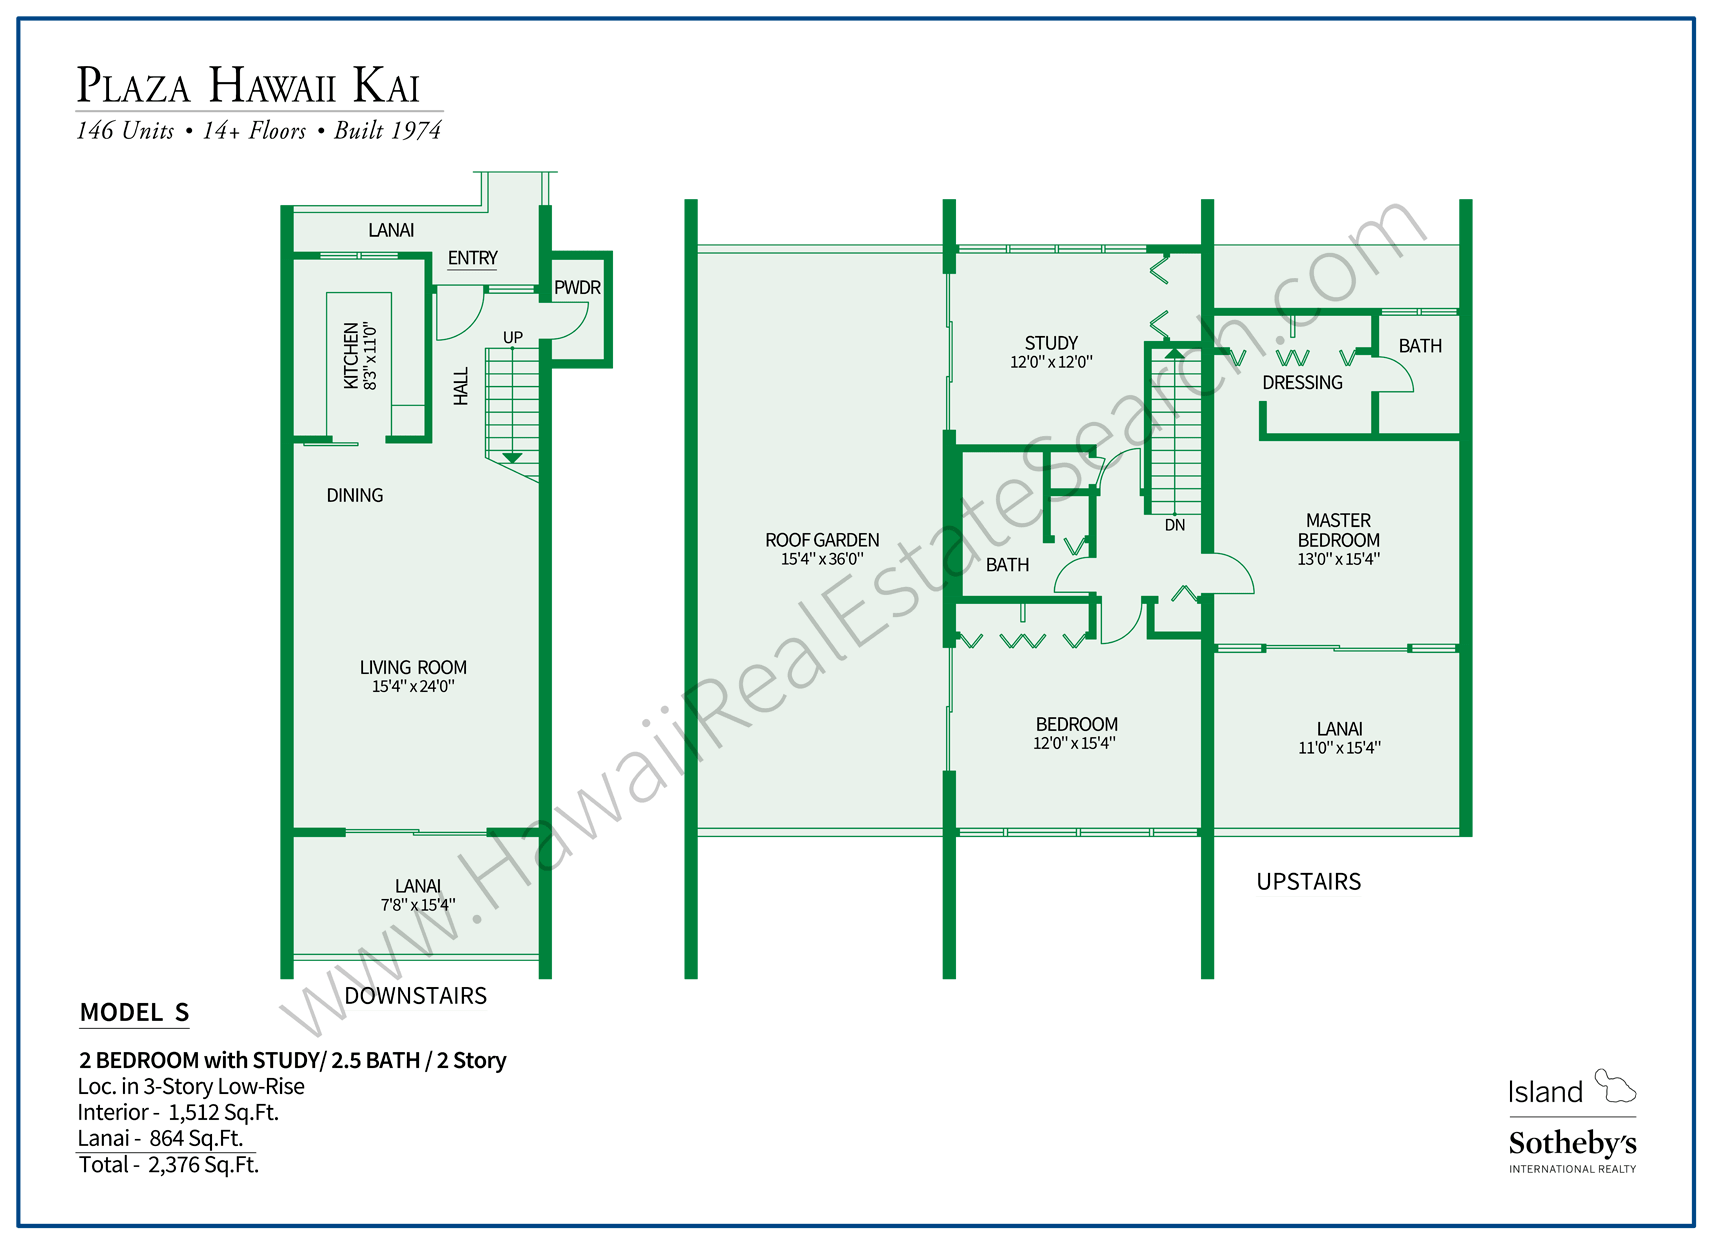 Plaza Hawaii Kai Floor Plan S